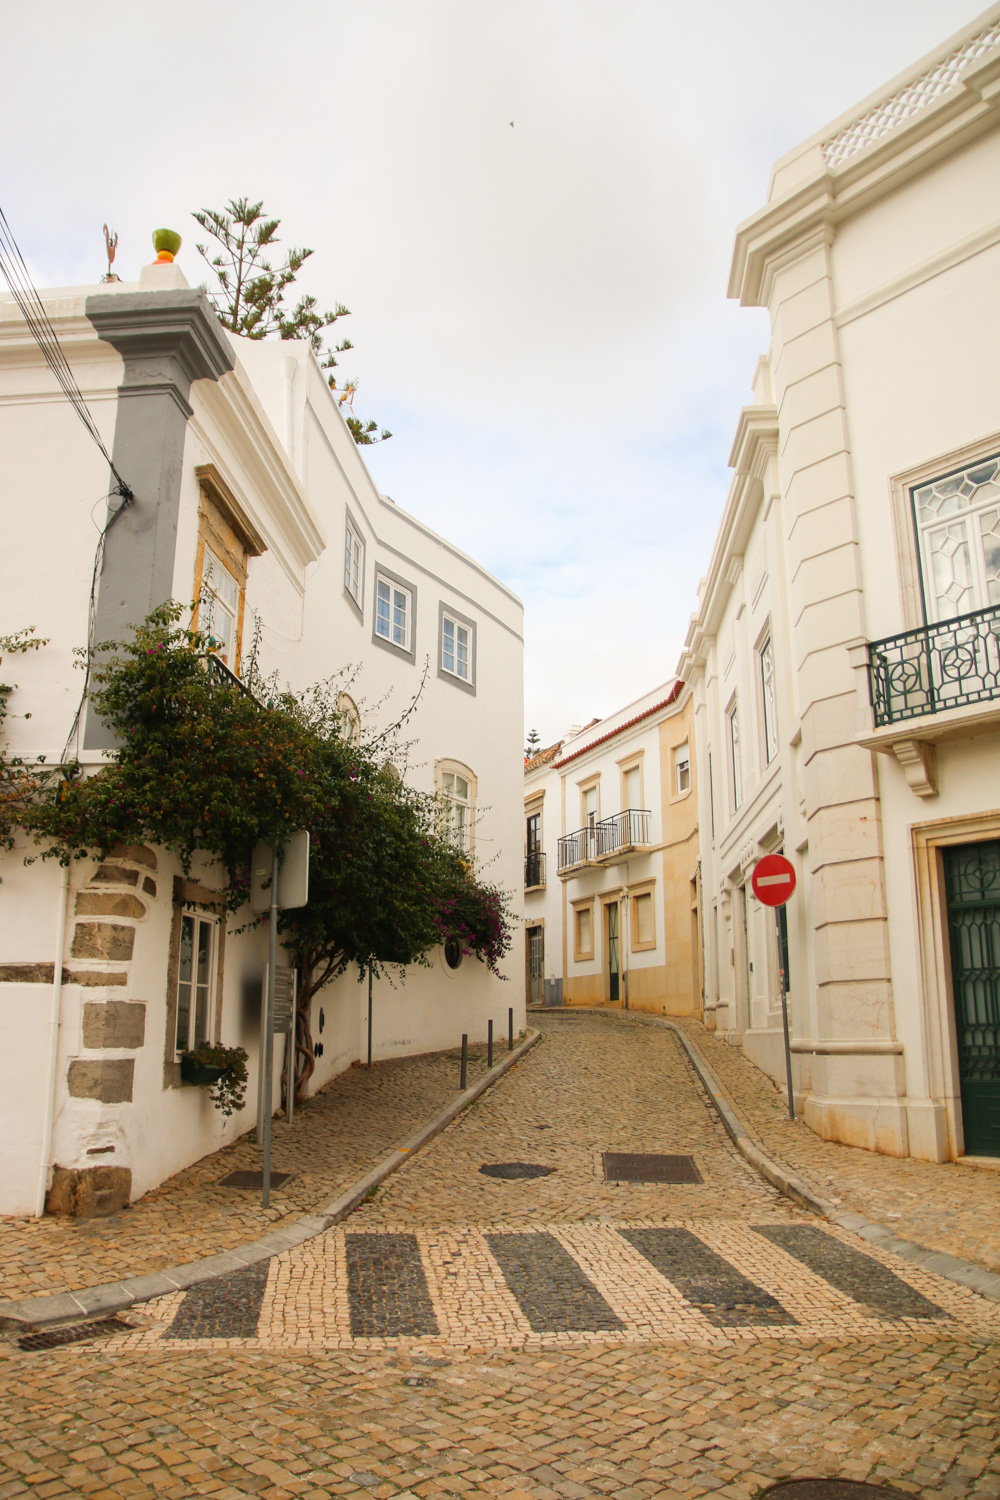 The streets of Tavira, The Algarve in Portugal